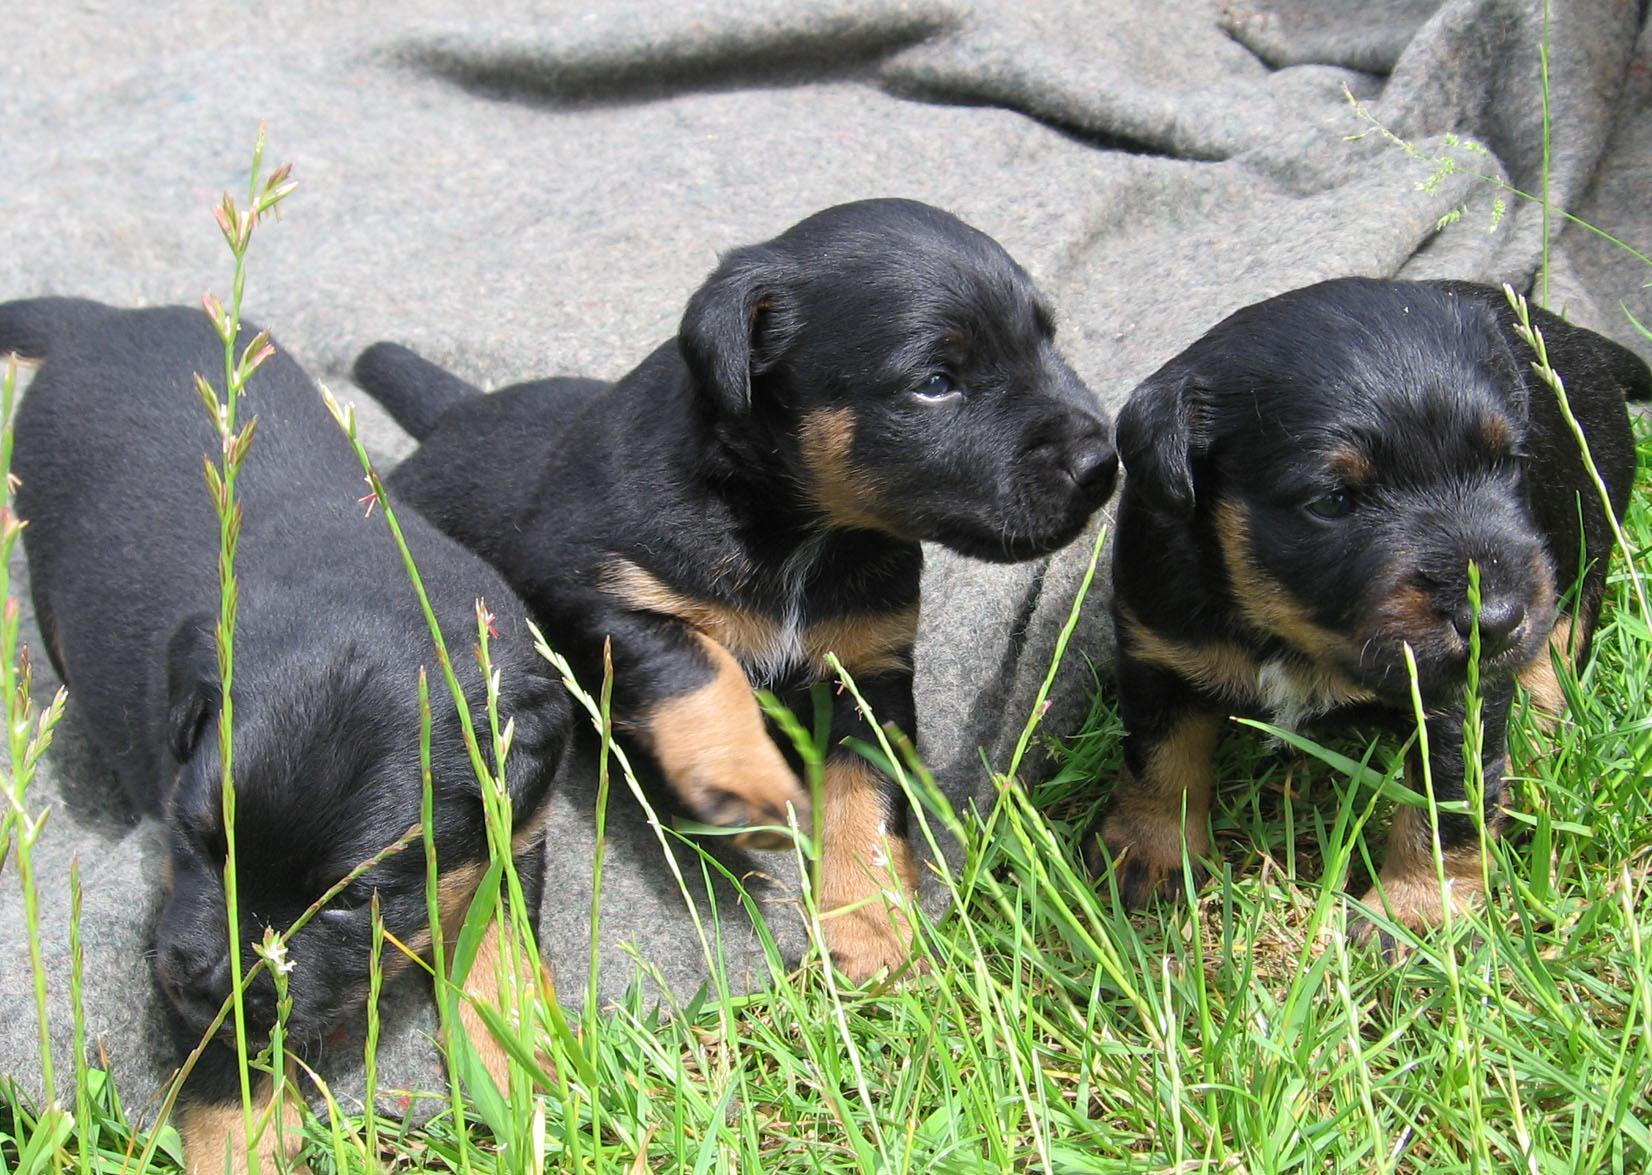 Cute Jagdterrier puppies wallpaper